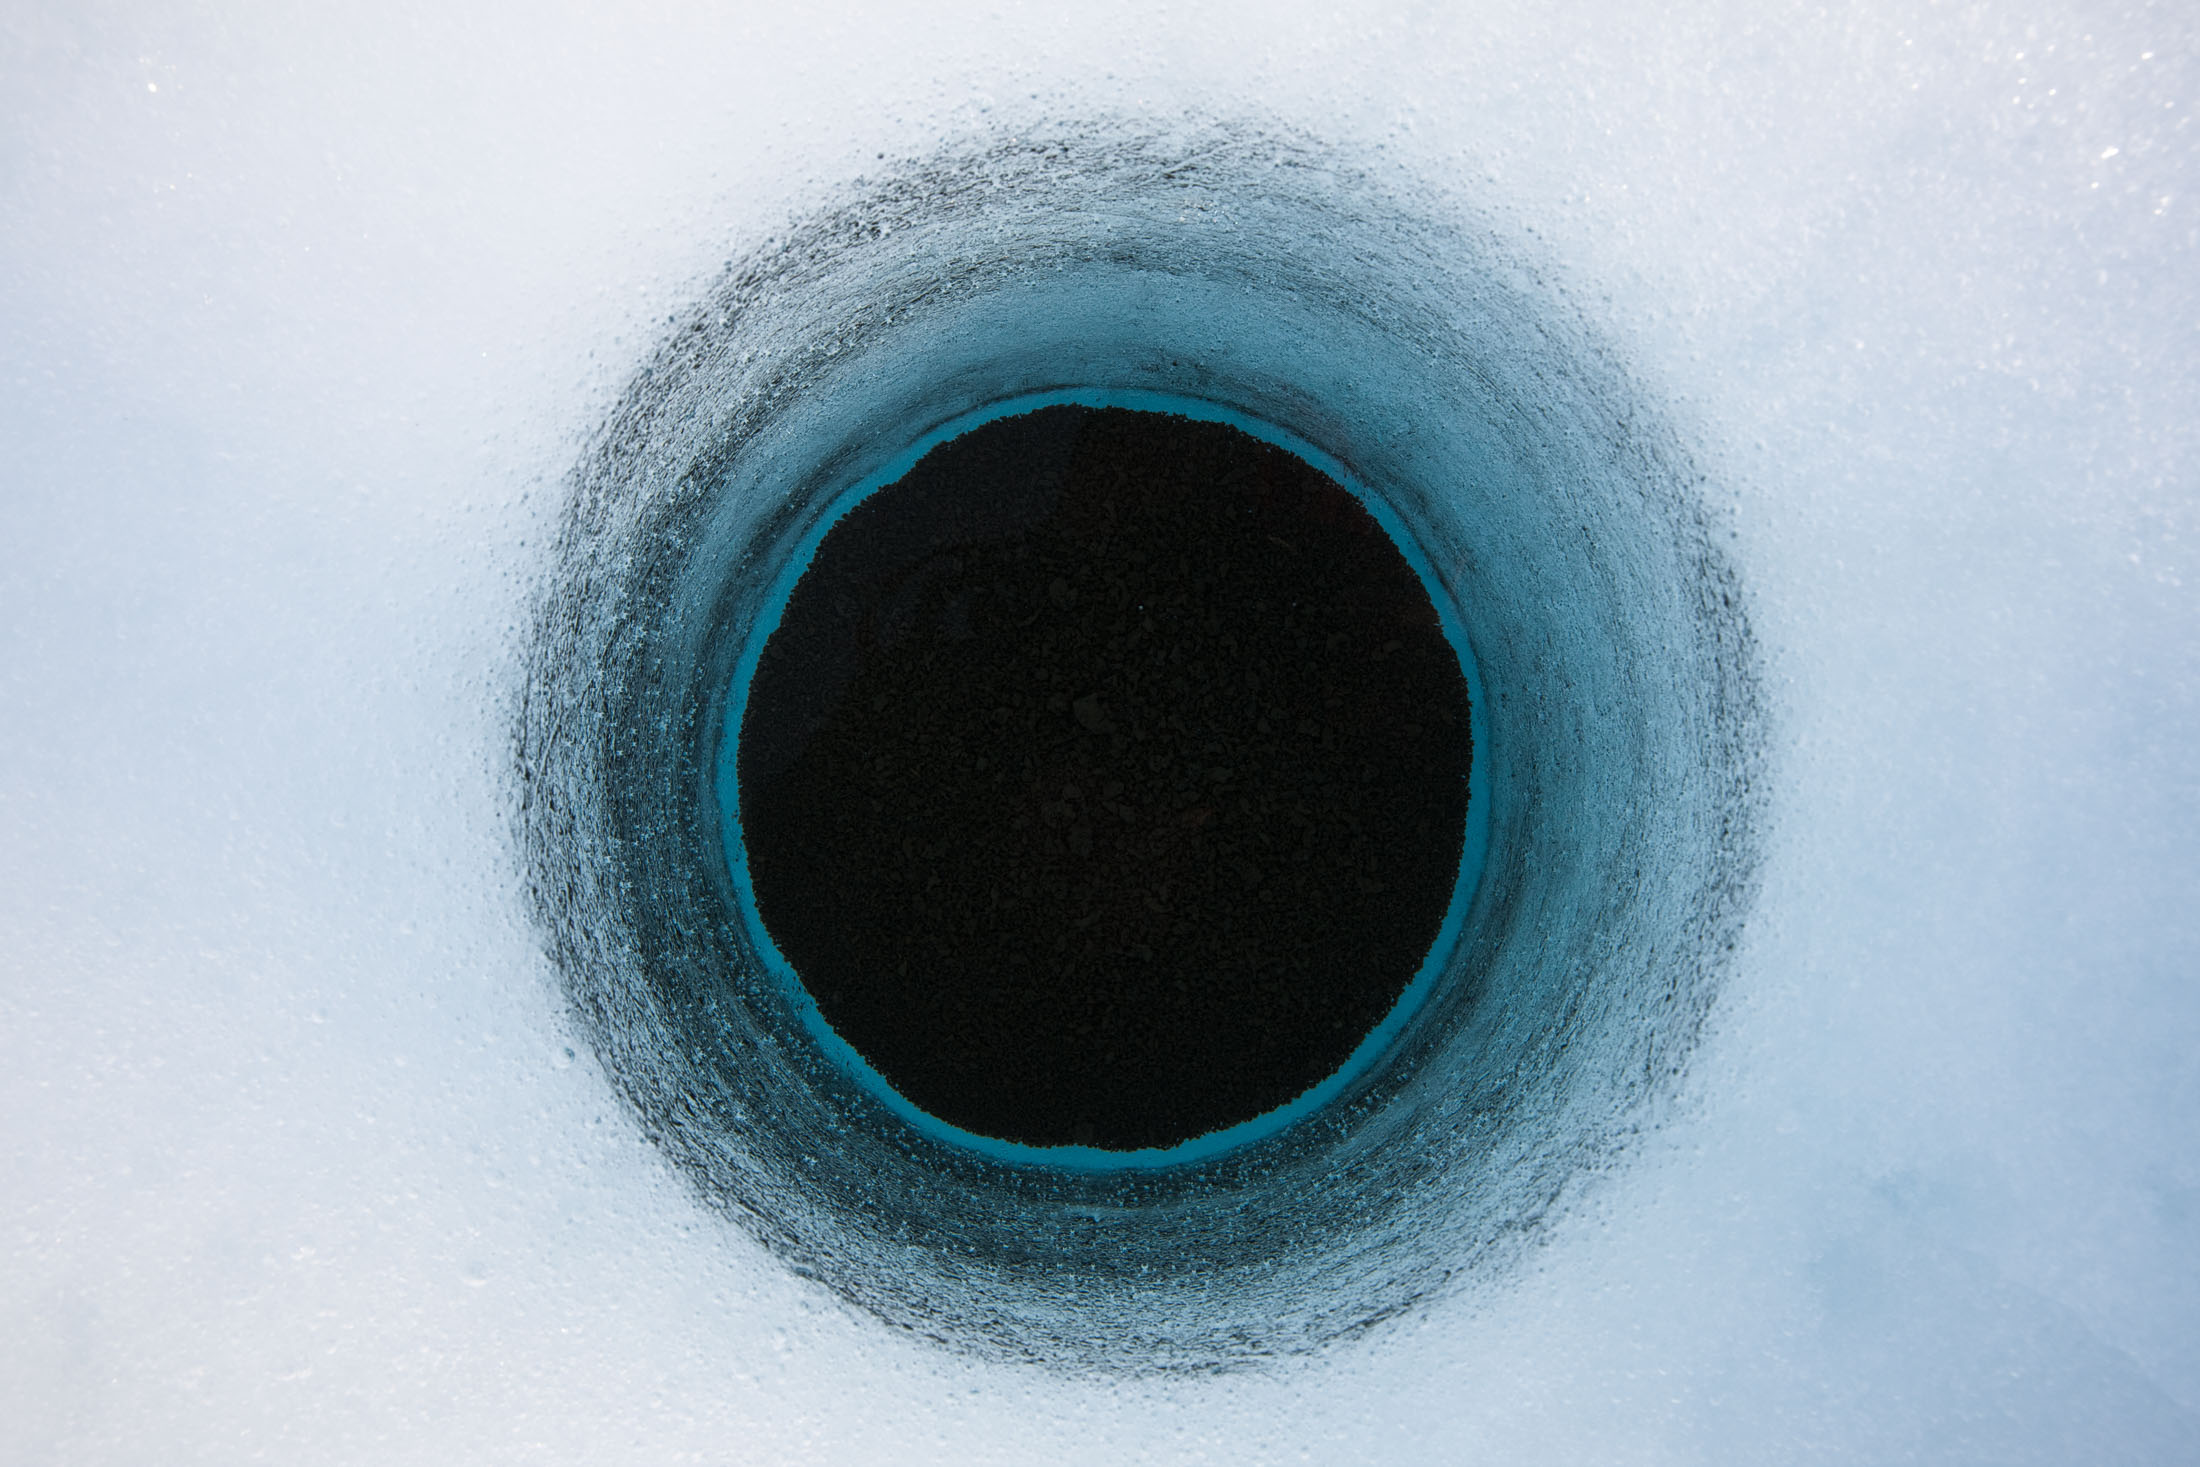 A hole made of cryoconite on the surface of the Greenland ice sheet